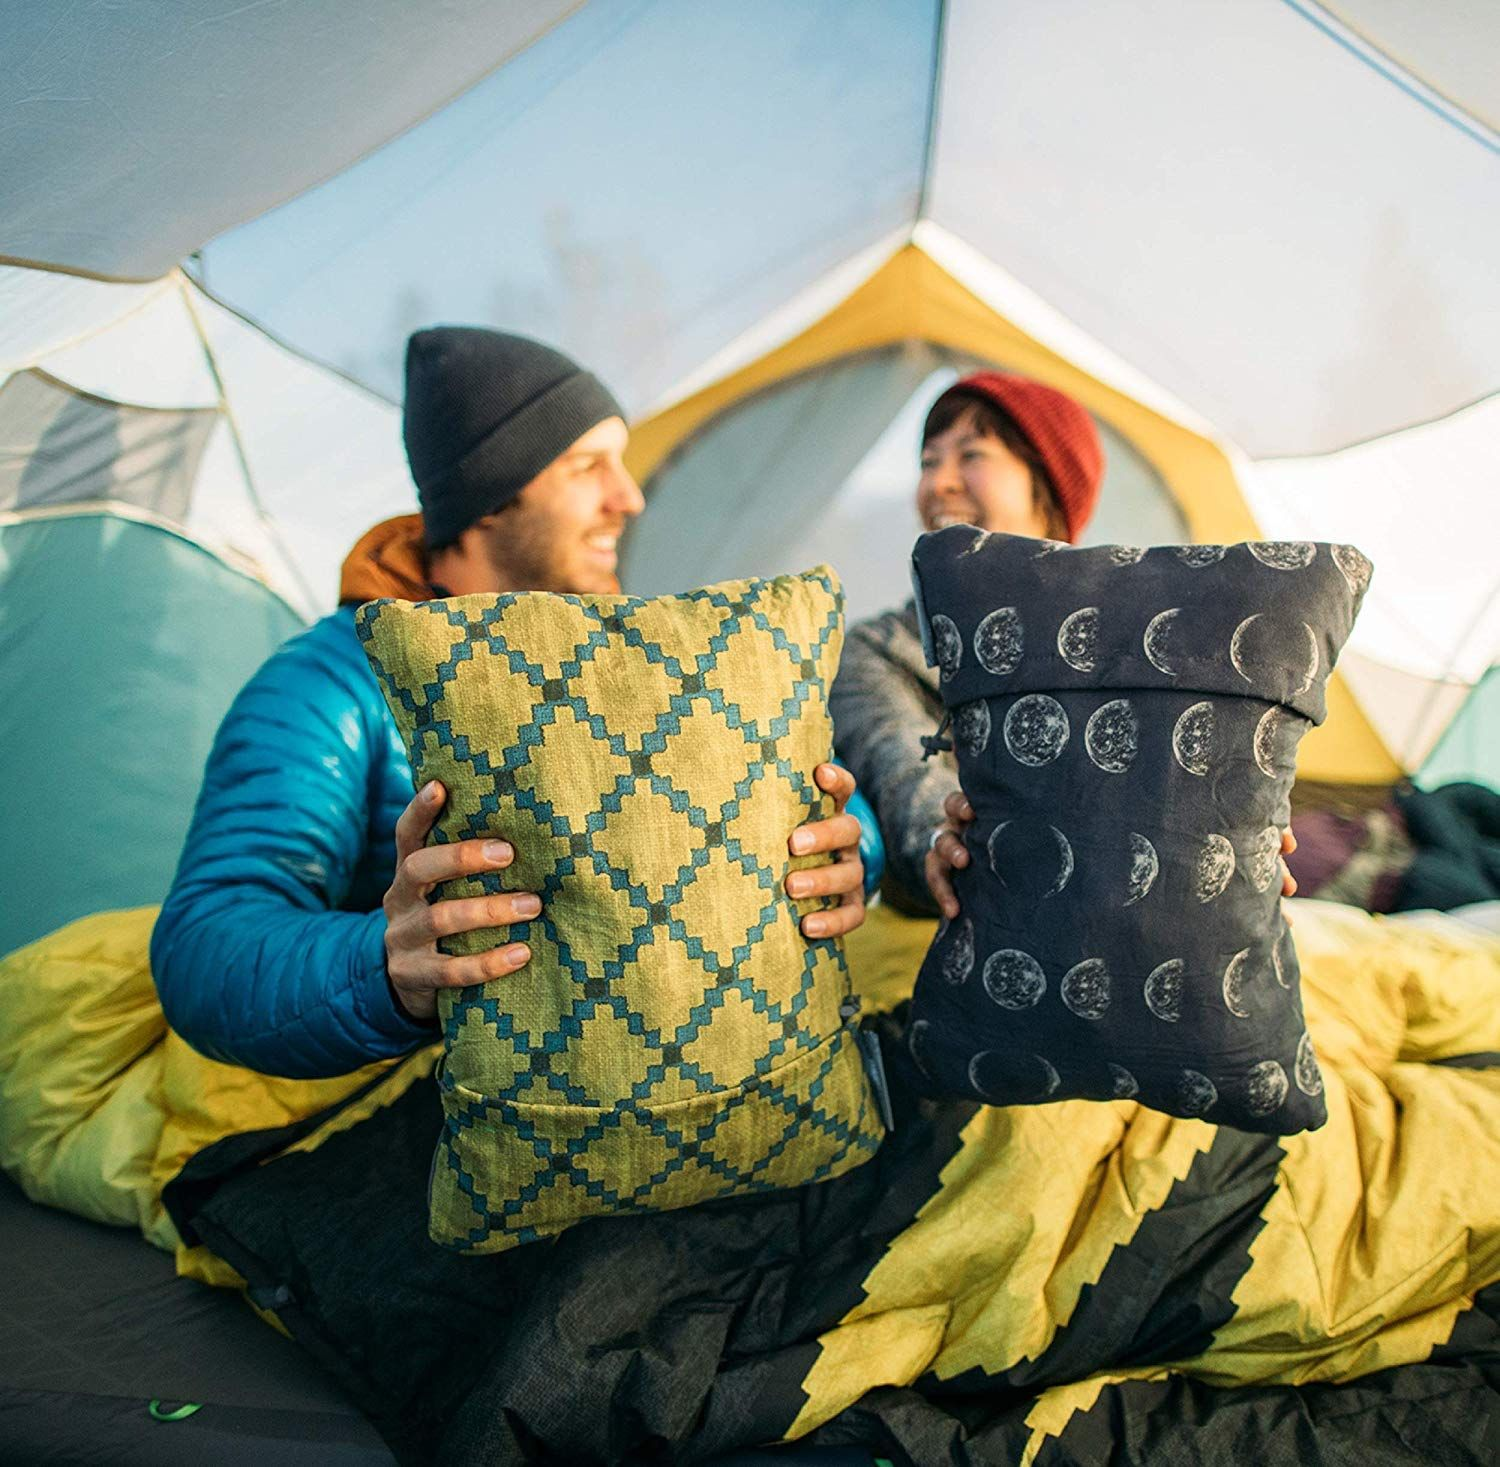 The Very Best Camping Gear, According to Soooo Many Reviews